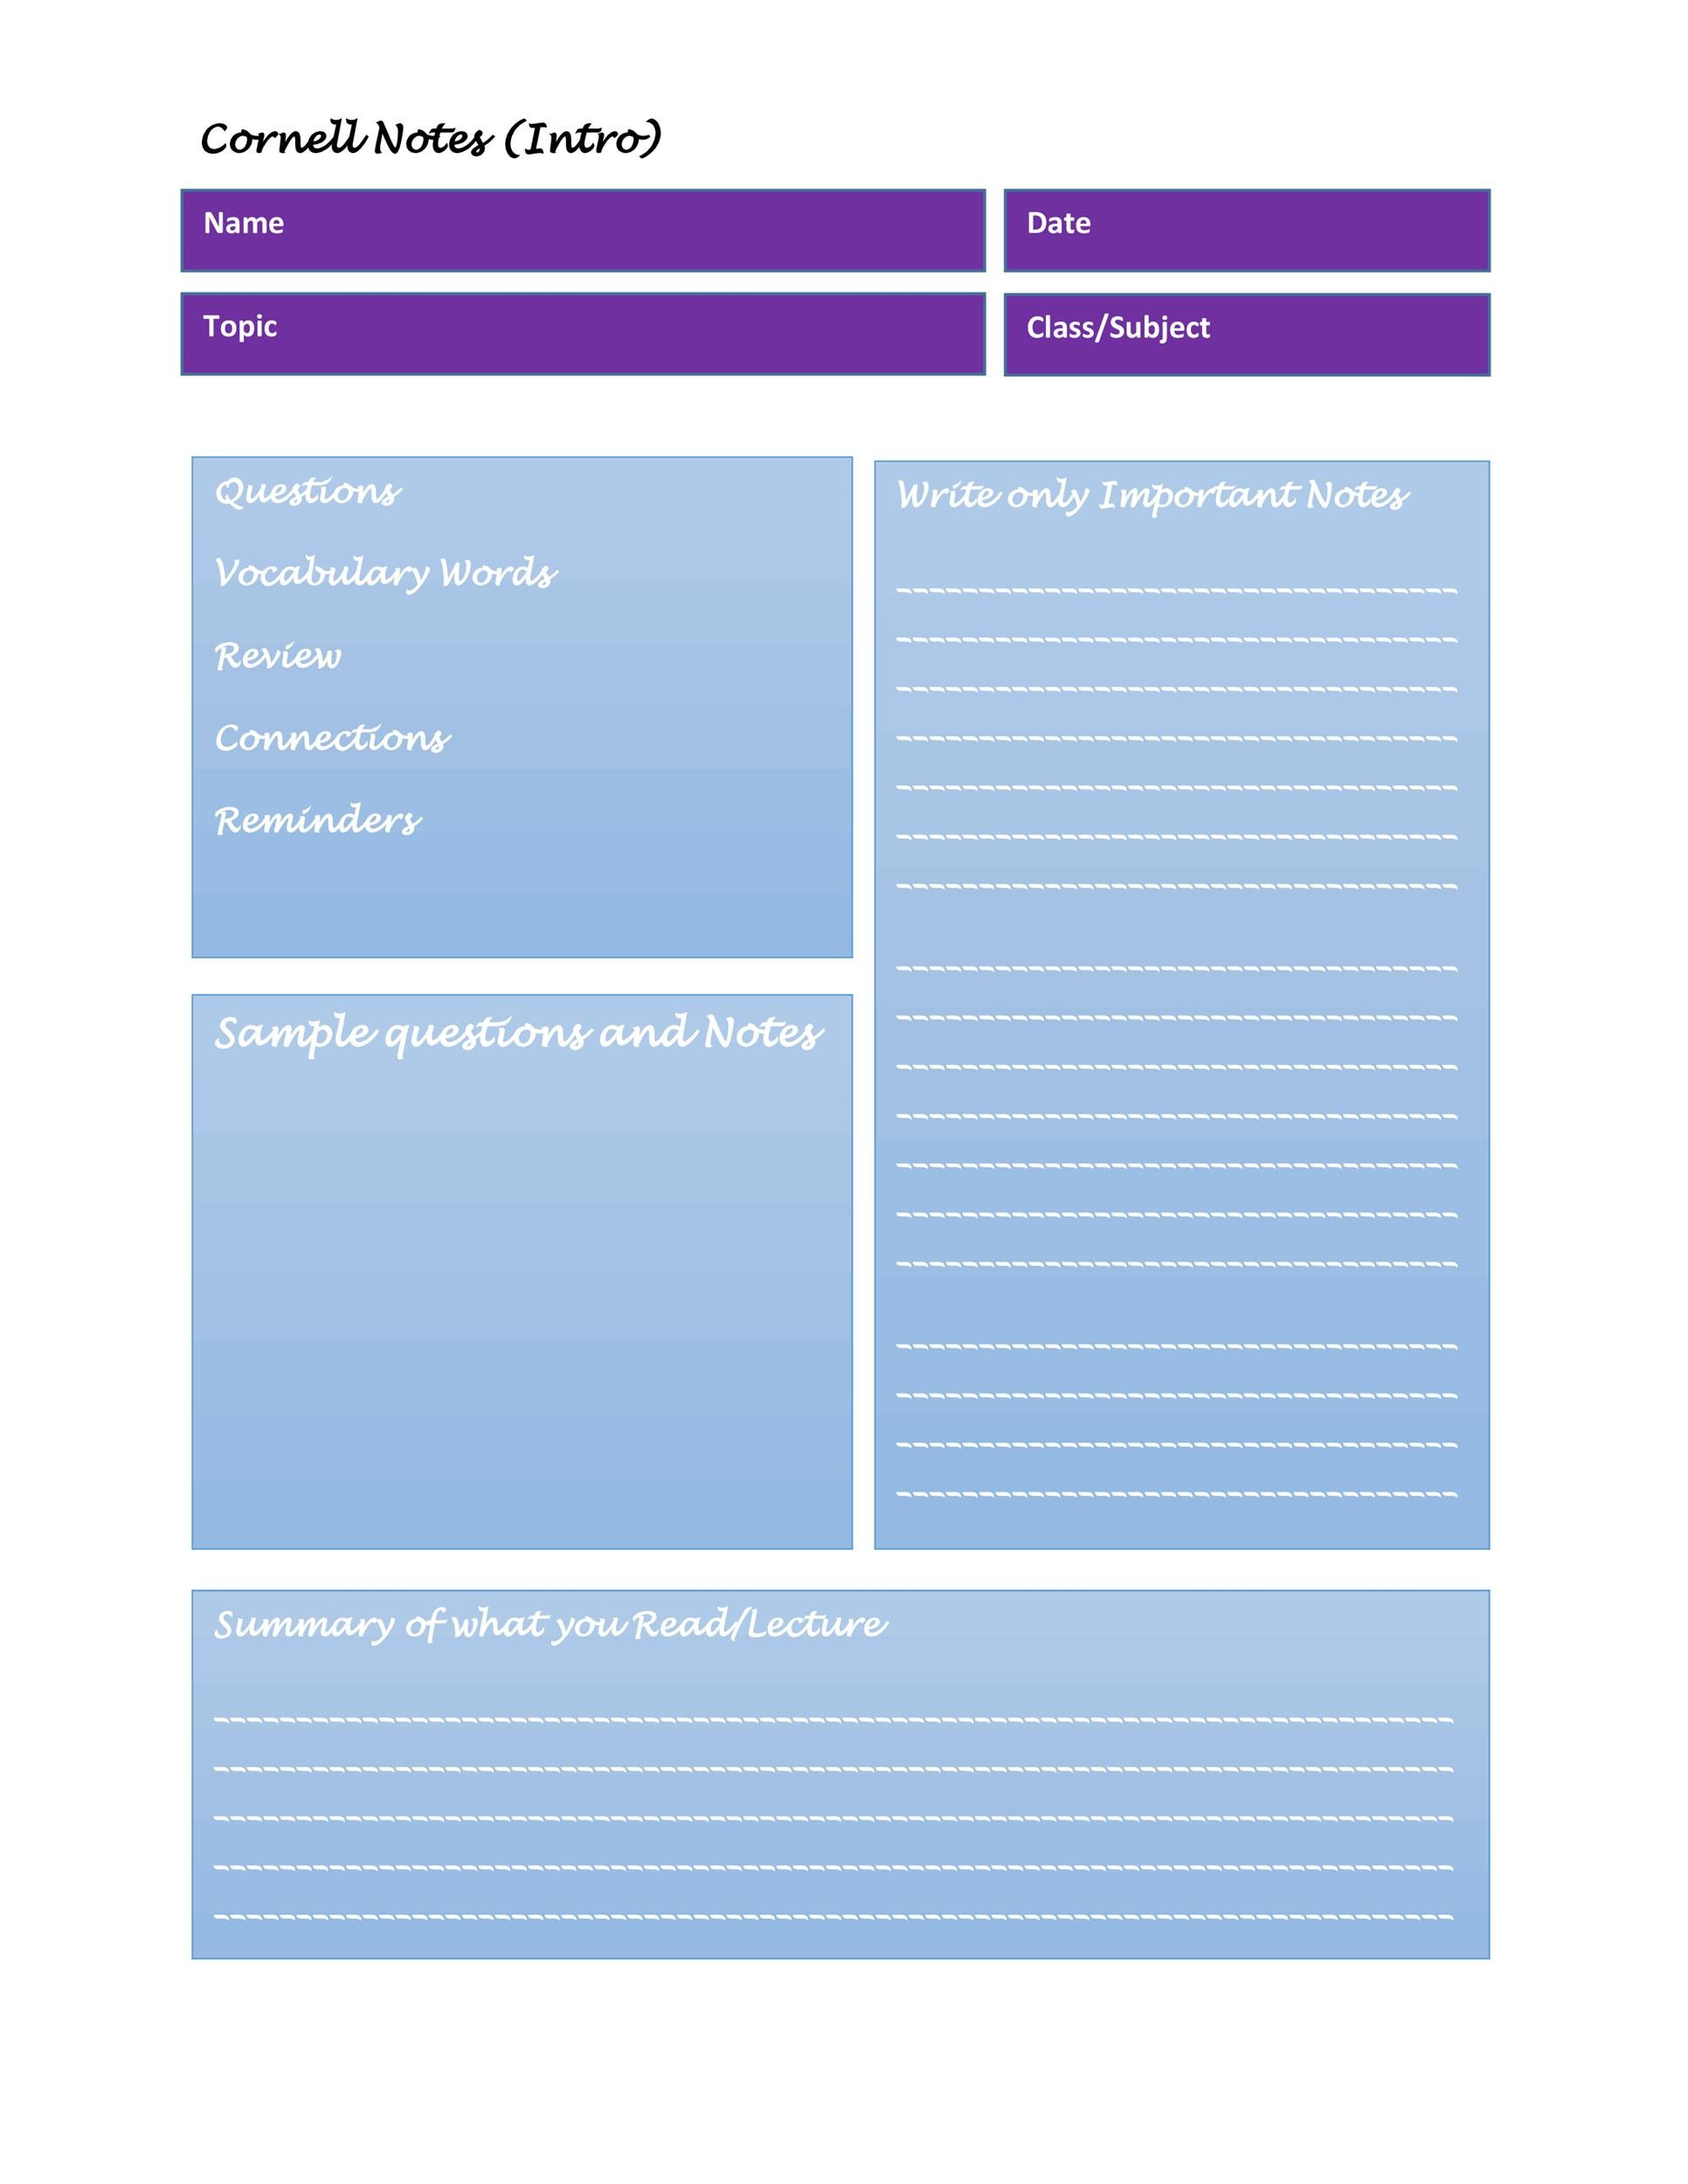 36 Cornell Notes Templates  Examples Word, PDF ᐅ Template Lab